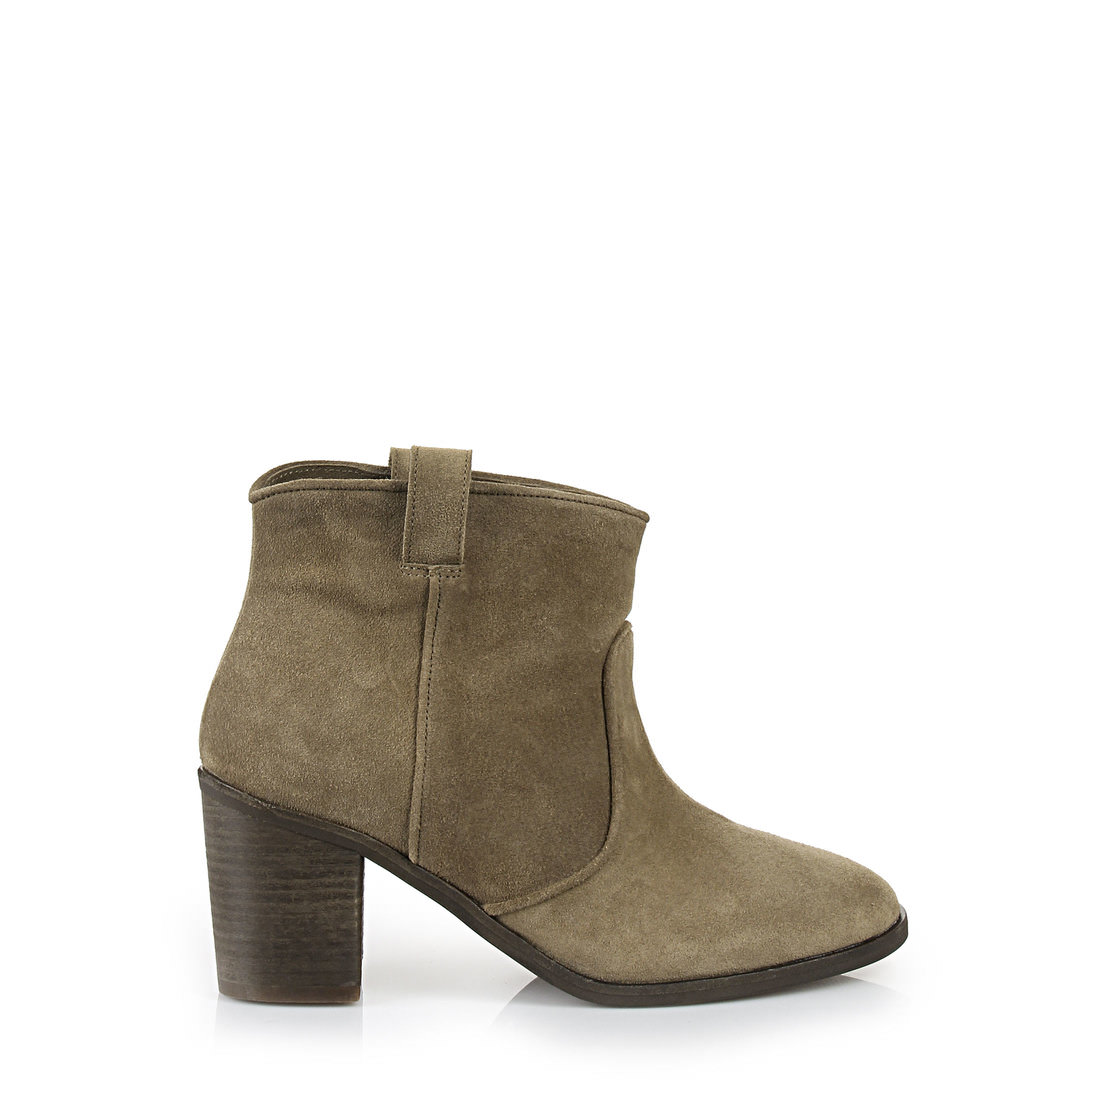 buffalo ankle boots in clay buy online in buffalo online shop buffalo. Black Bedroom Furniture Sets. Home Design Ideas